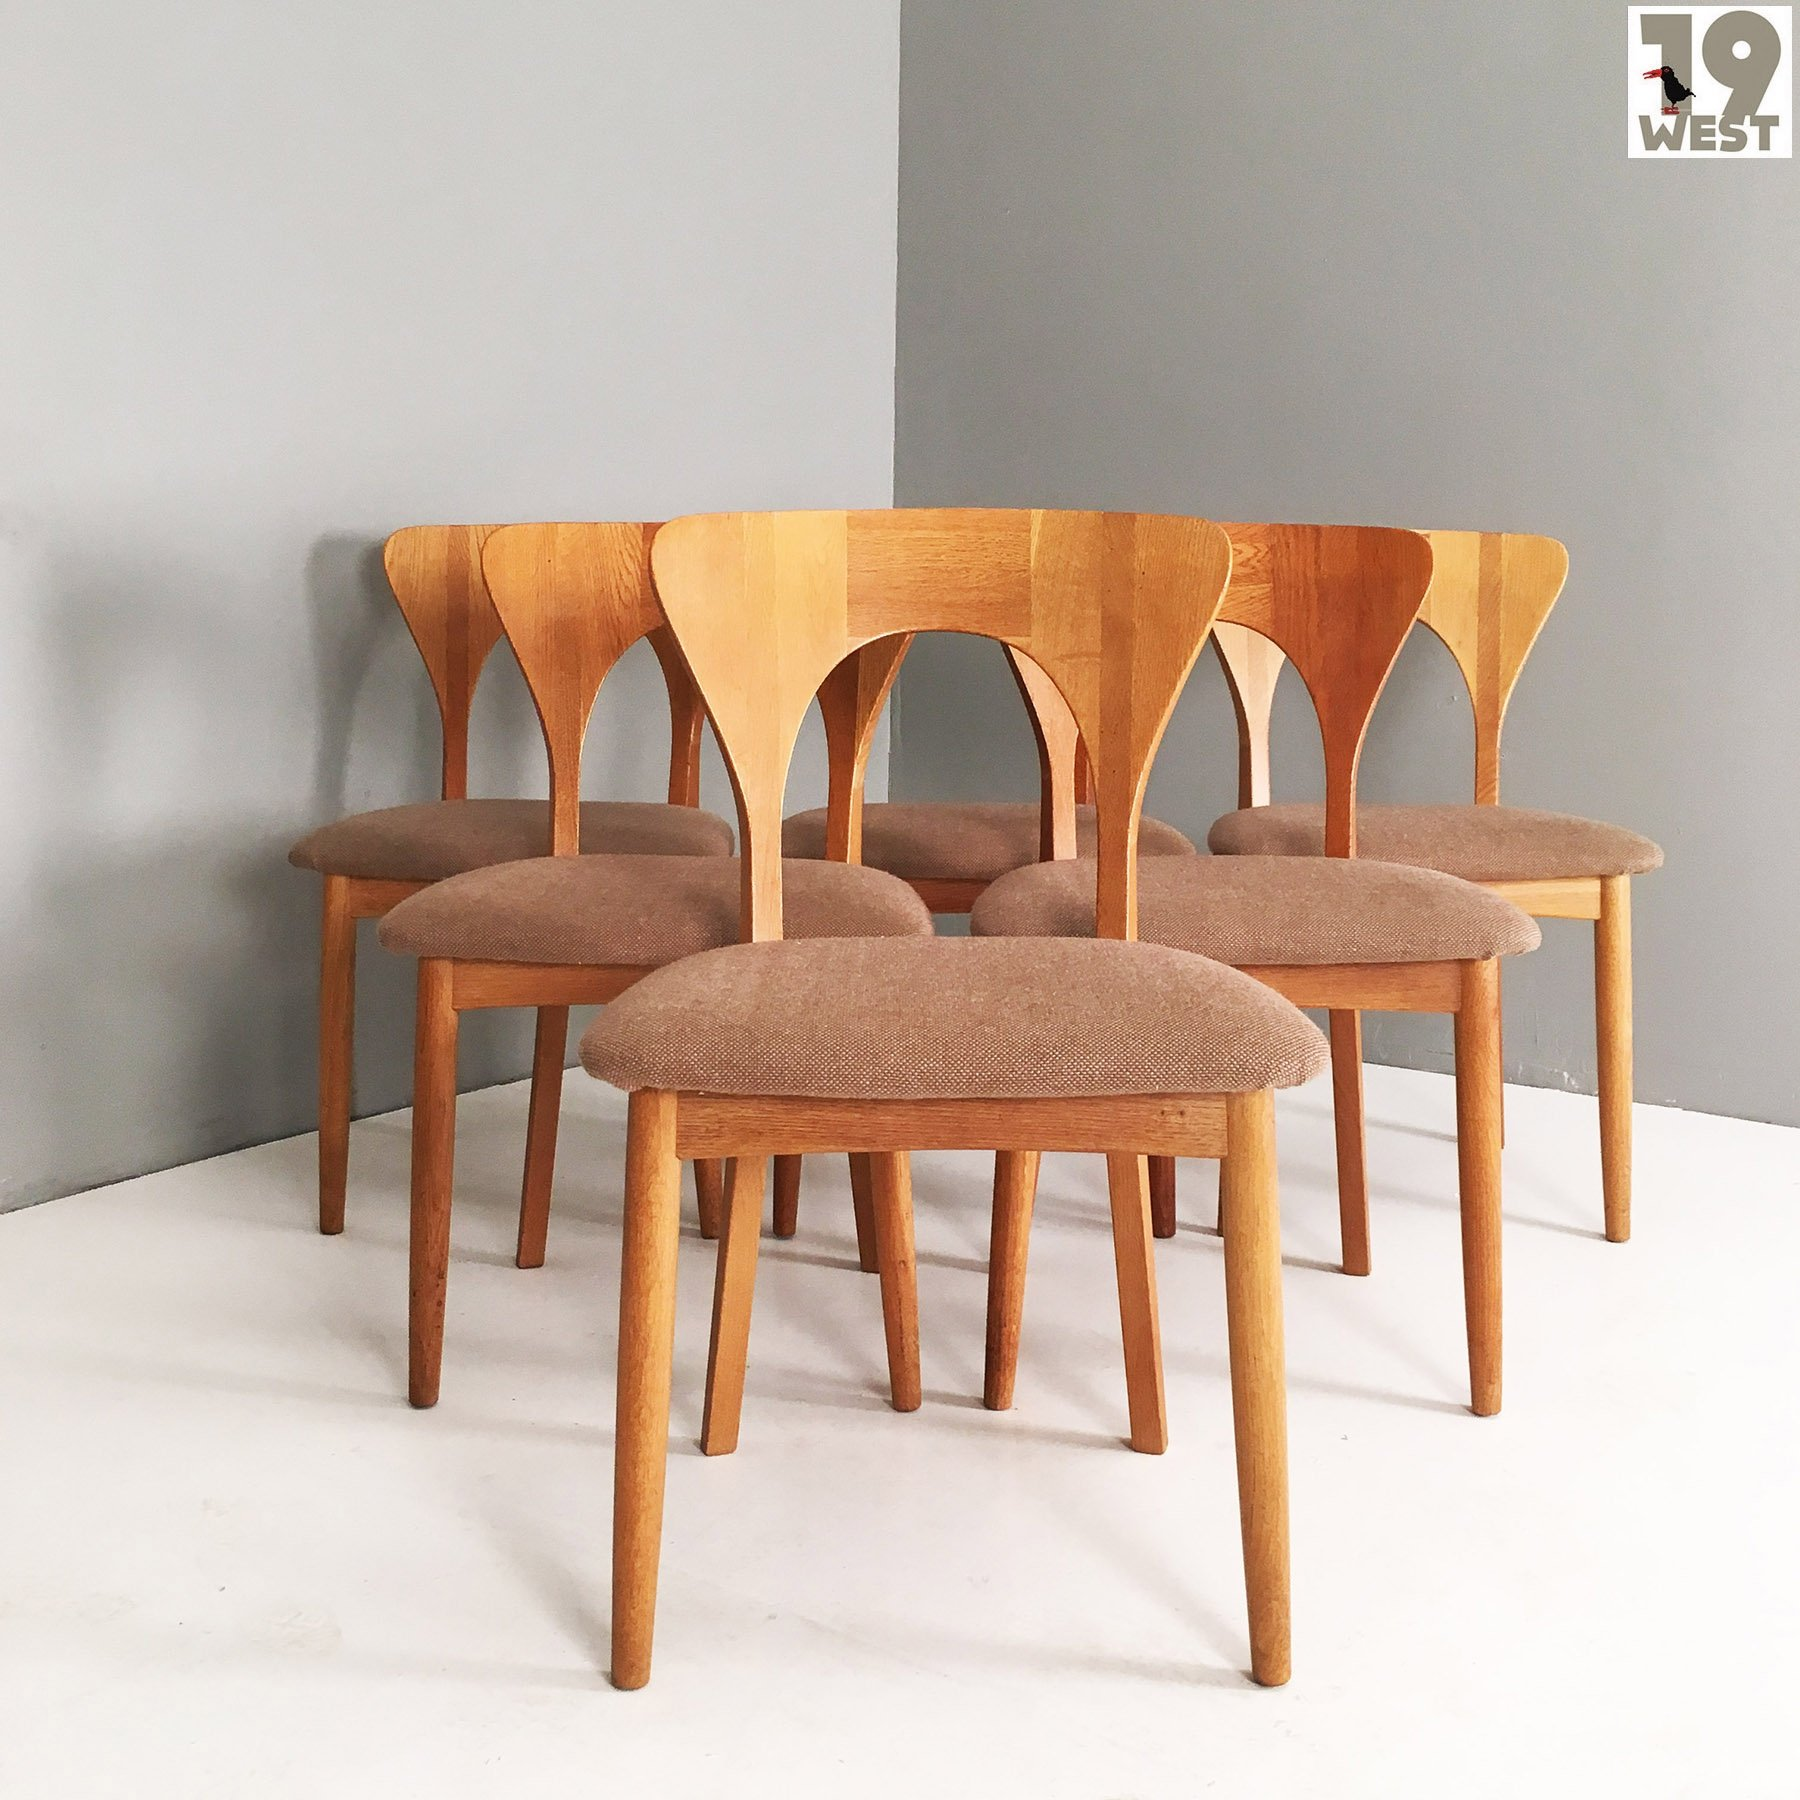 Admirable Set Of Six Danish Oak Dining Chairs By Kofoeds Hornslet Caraccident5 Cool Chair Designs And Ideas Caraccident5Info